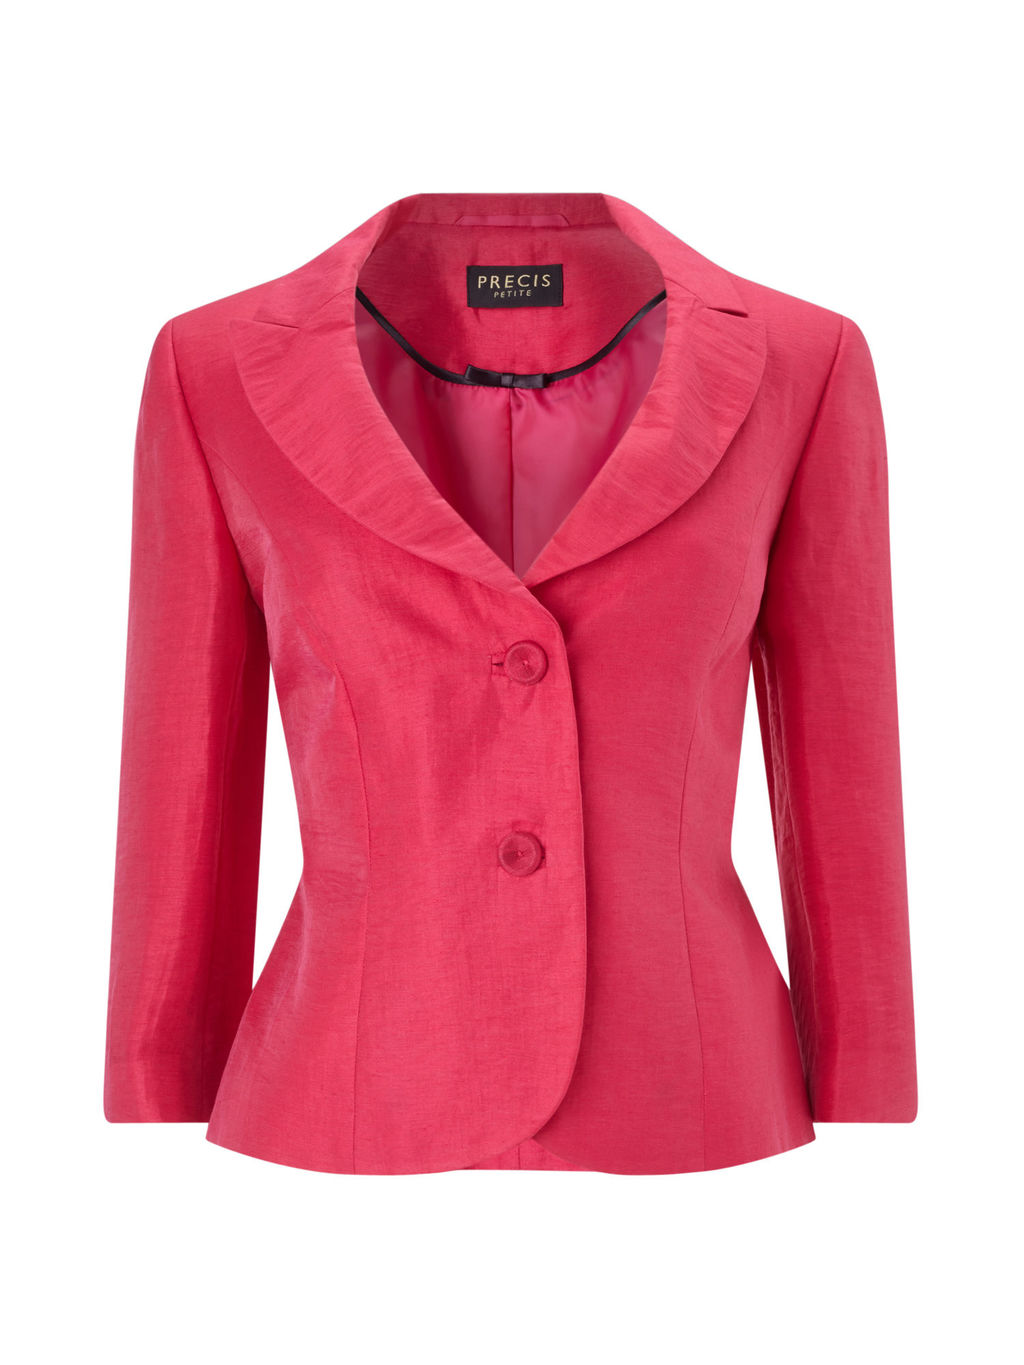 Portrait Crinkle Jacket, Pink - pattern: plain; style: single breasted blazer; collar: standard lapel/rever collar; predominant colour: hot pink; occasions: evening, occasion; length: standard; fit: tailored/fitted; fibres: linen - mix; sleeve length: 3/4 length; sleeve style: standard; texture group: structured shiny - satin/tafetta/silk etc.; collar break: medium; pattern type: fabric; season: s/s 2016; wardrobe: event